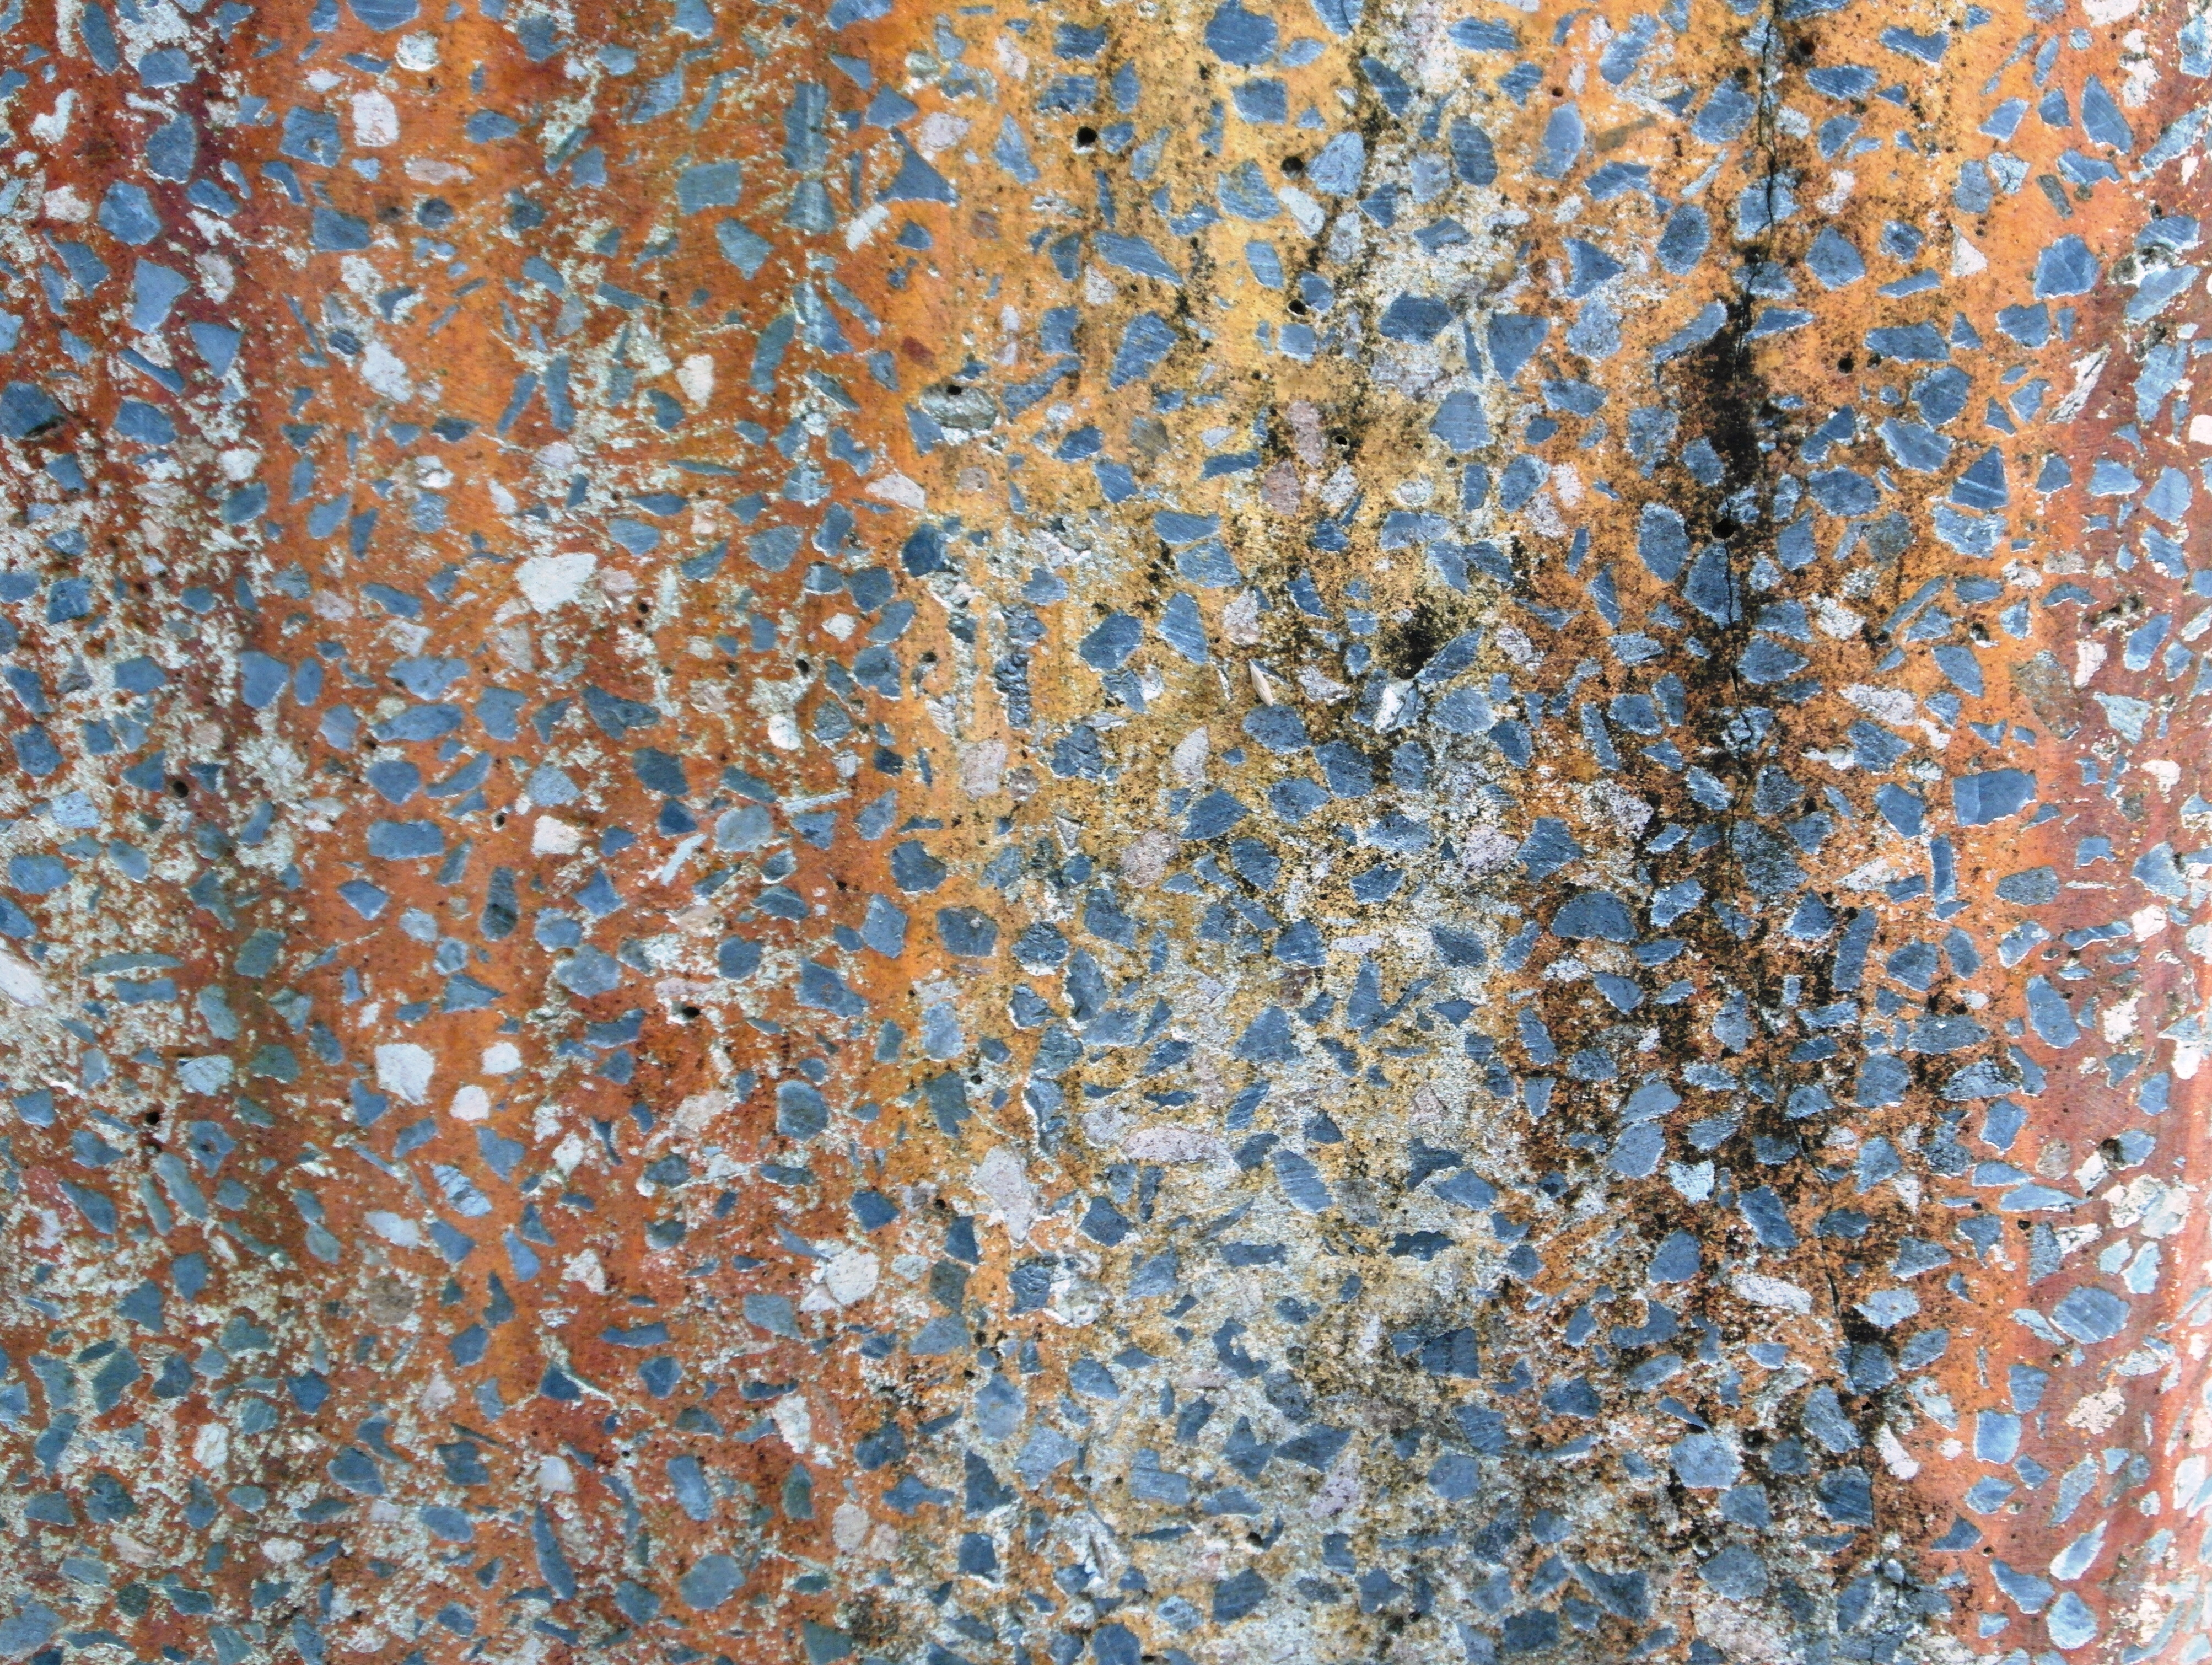 Speckled grunge background photo